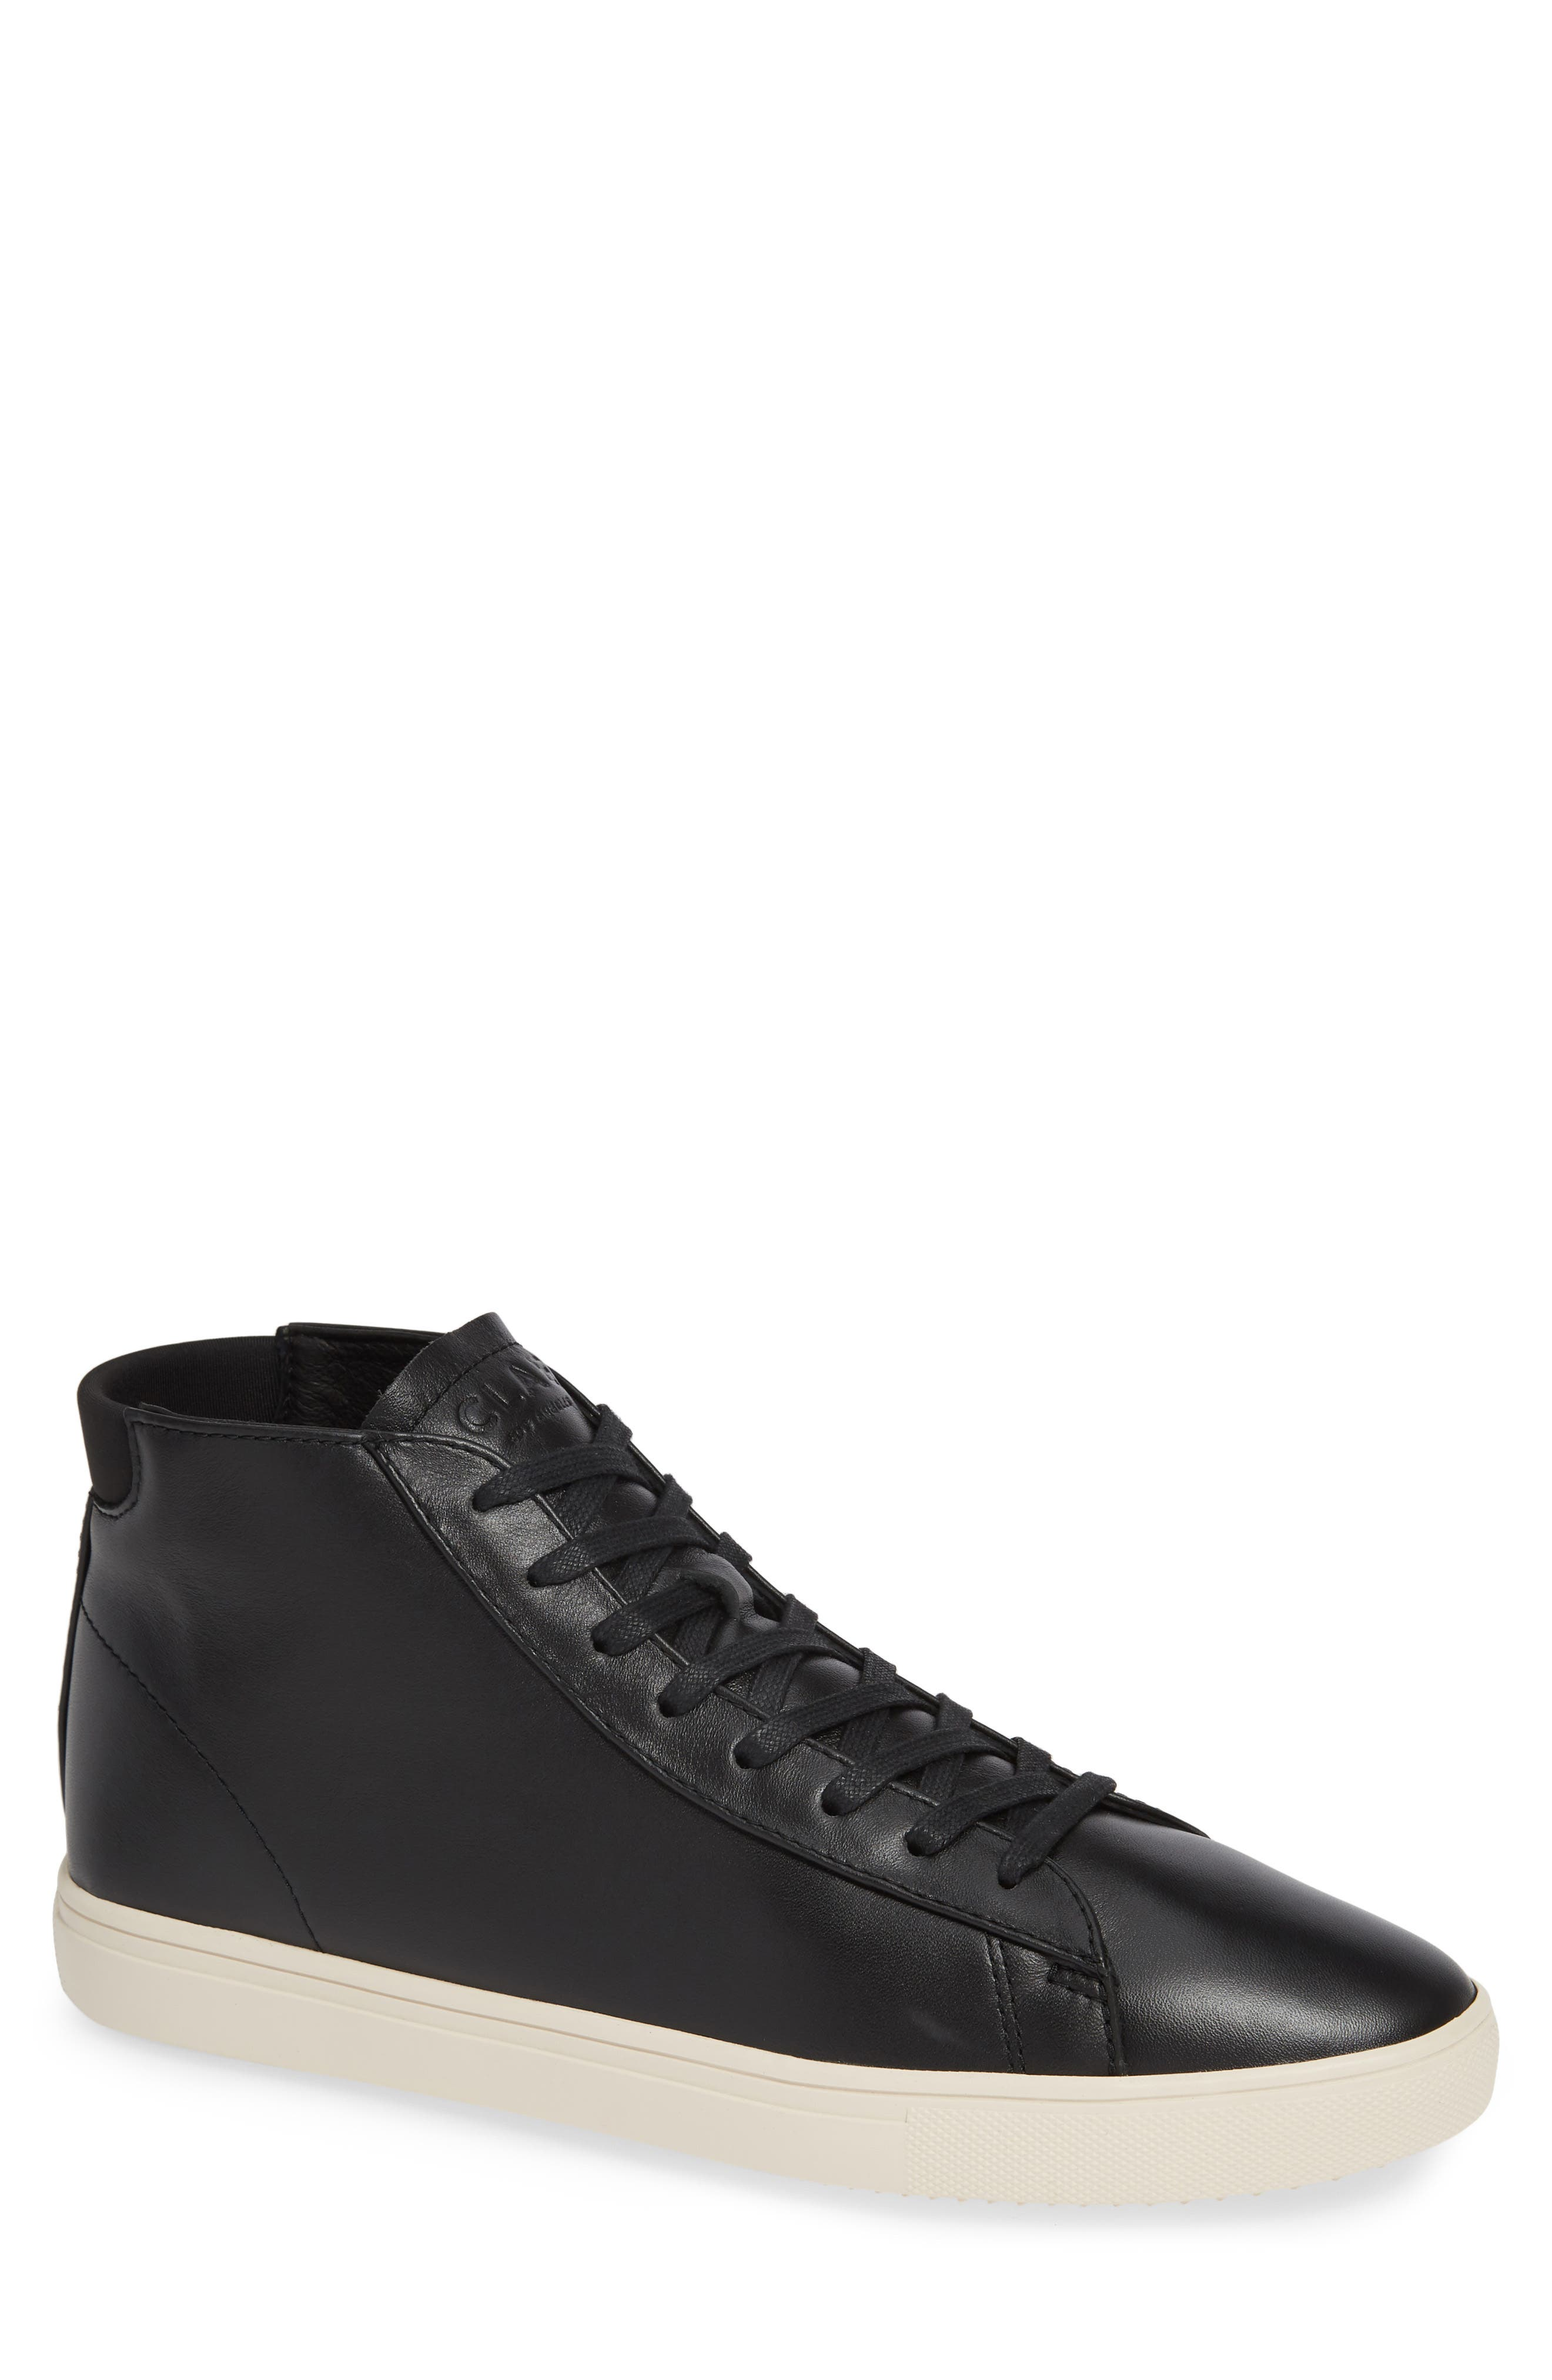 CLAE 'Bradley Mid' Sneaker in Black Milled Tumbled Leather